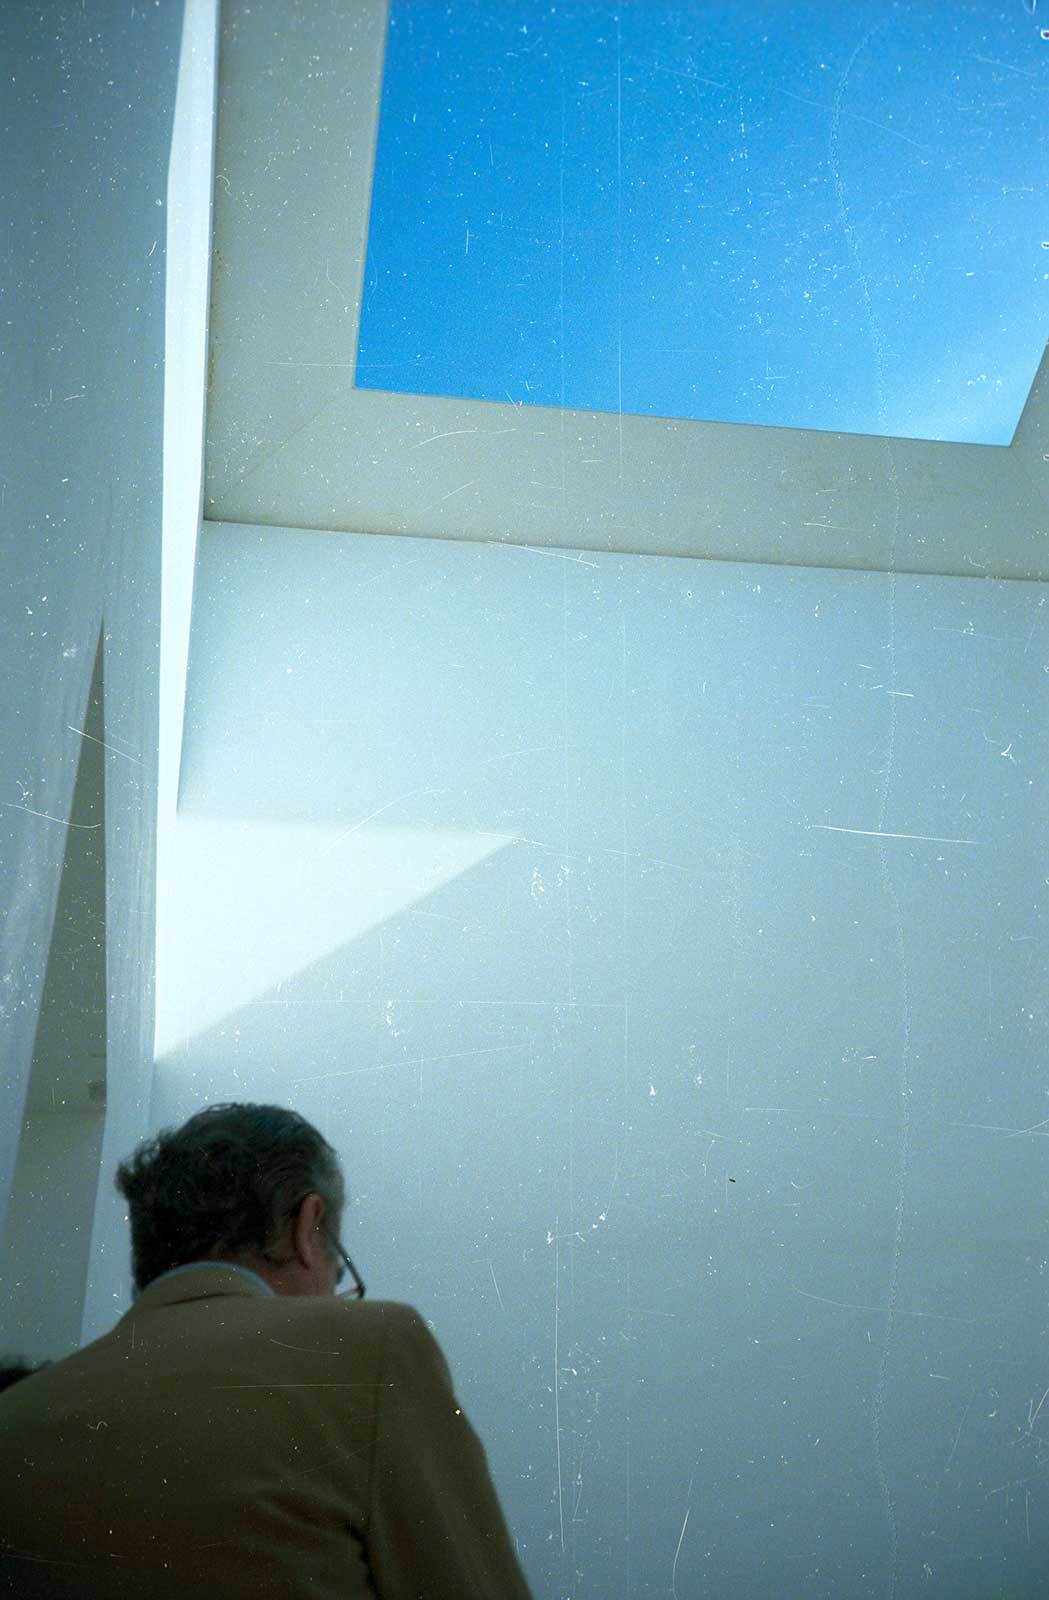 James Turrell. «Sky Space I, Varese».Varese. Edinburgh Arts 1977. Di spalle si vede Giuseppe Panza. Courtesy of Demarco European Art Foundation & Demarco Digital Archive, University of Dundee.